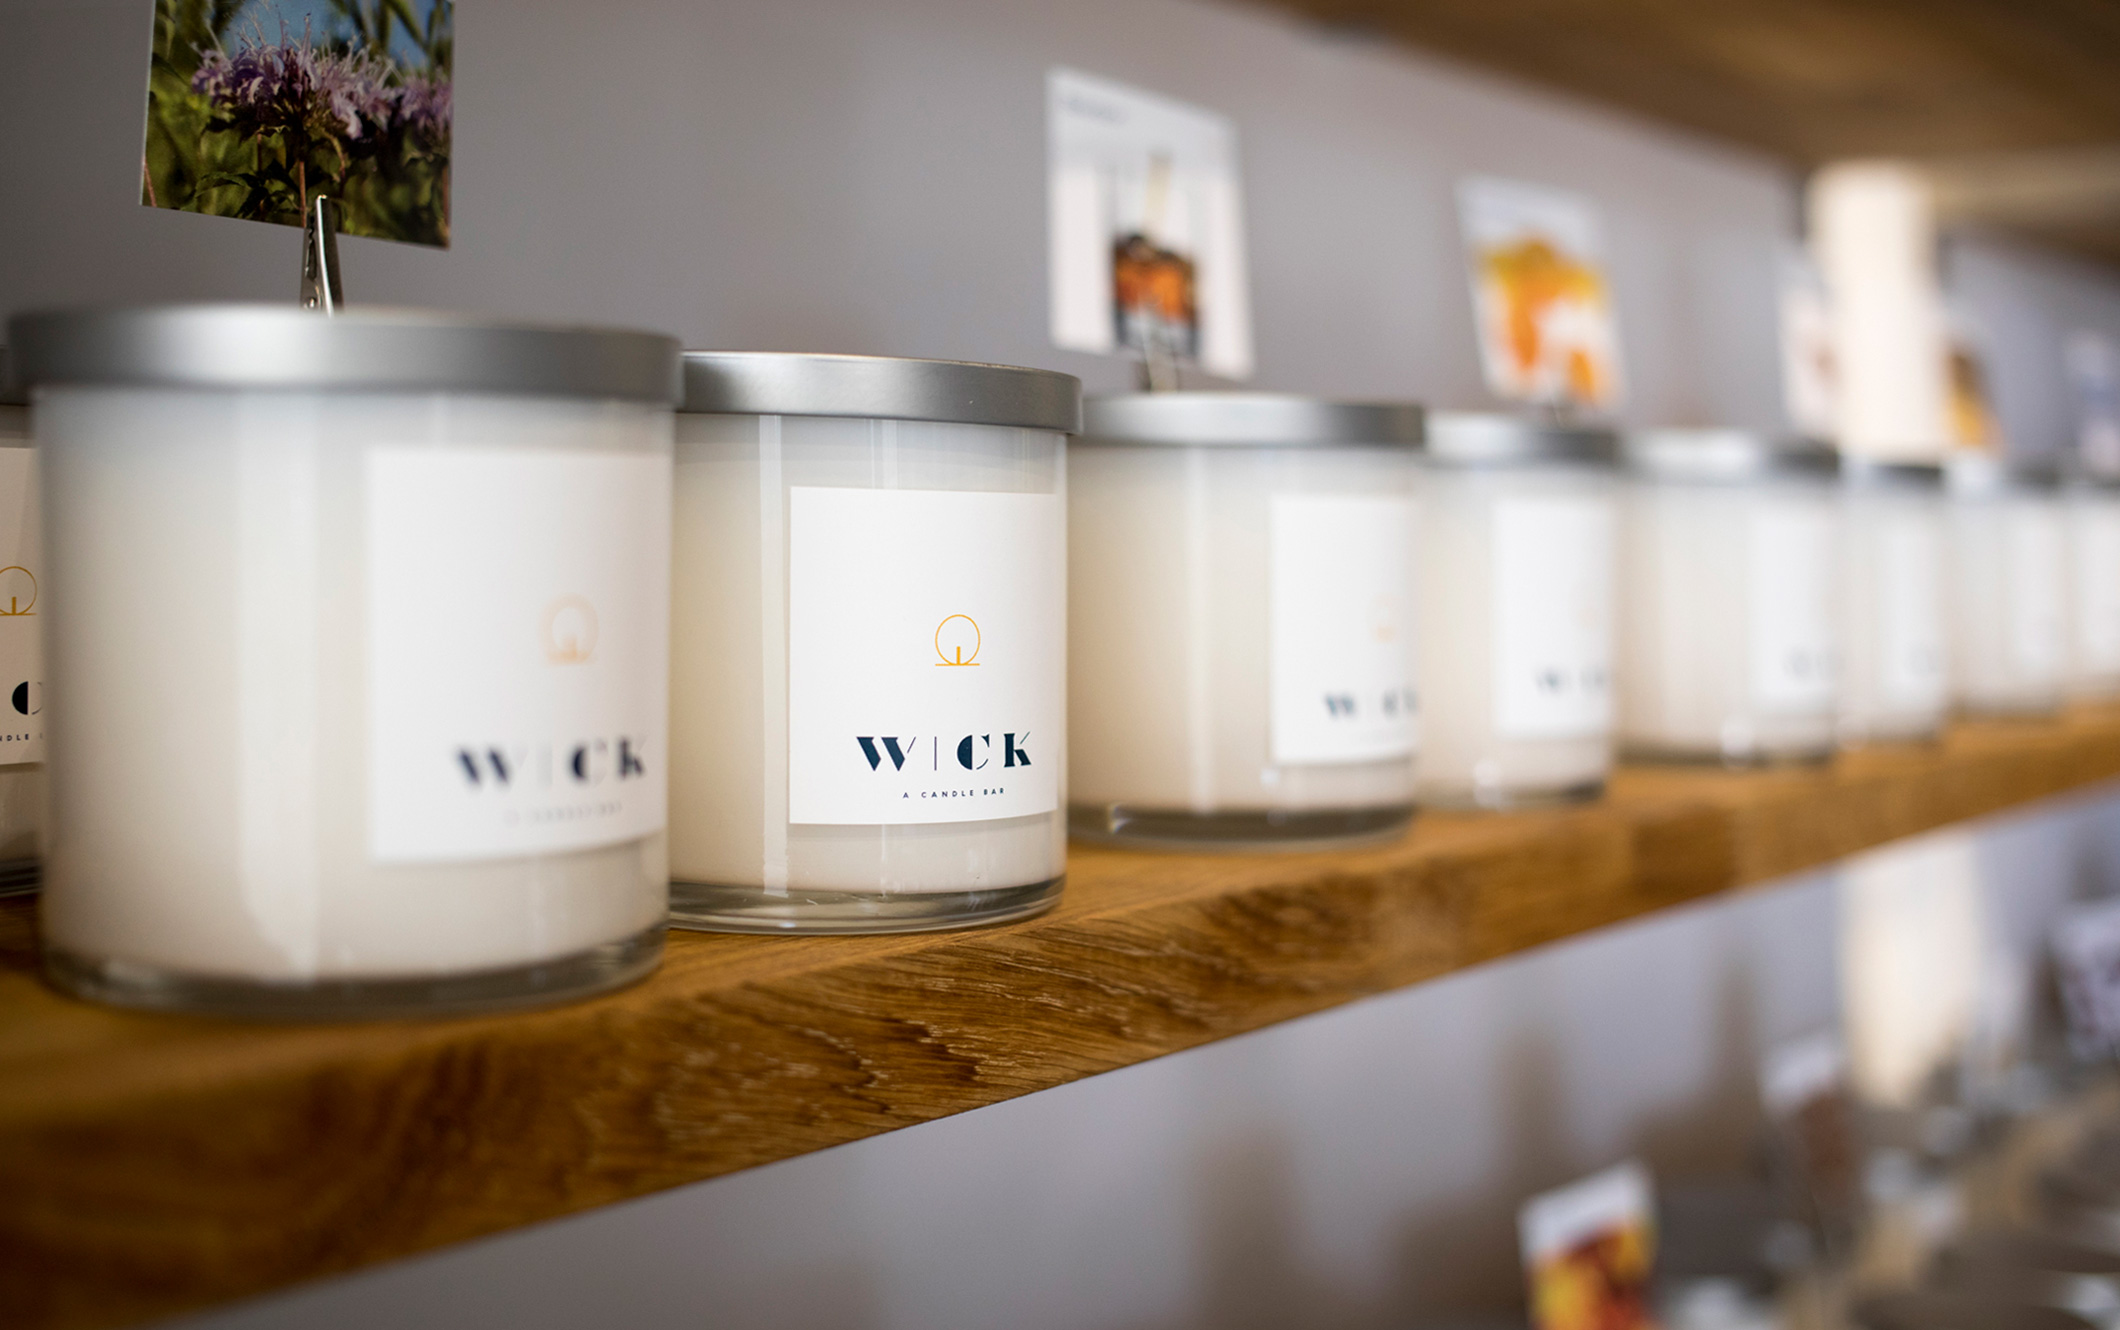 Photo of Wick candles on shelf